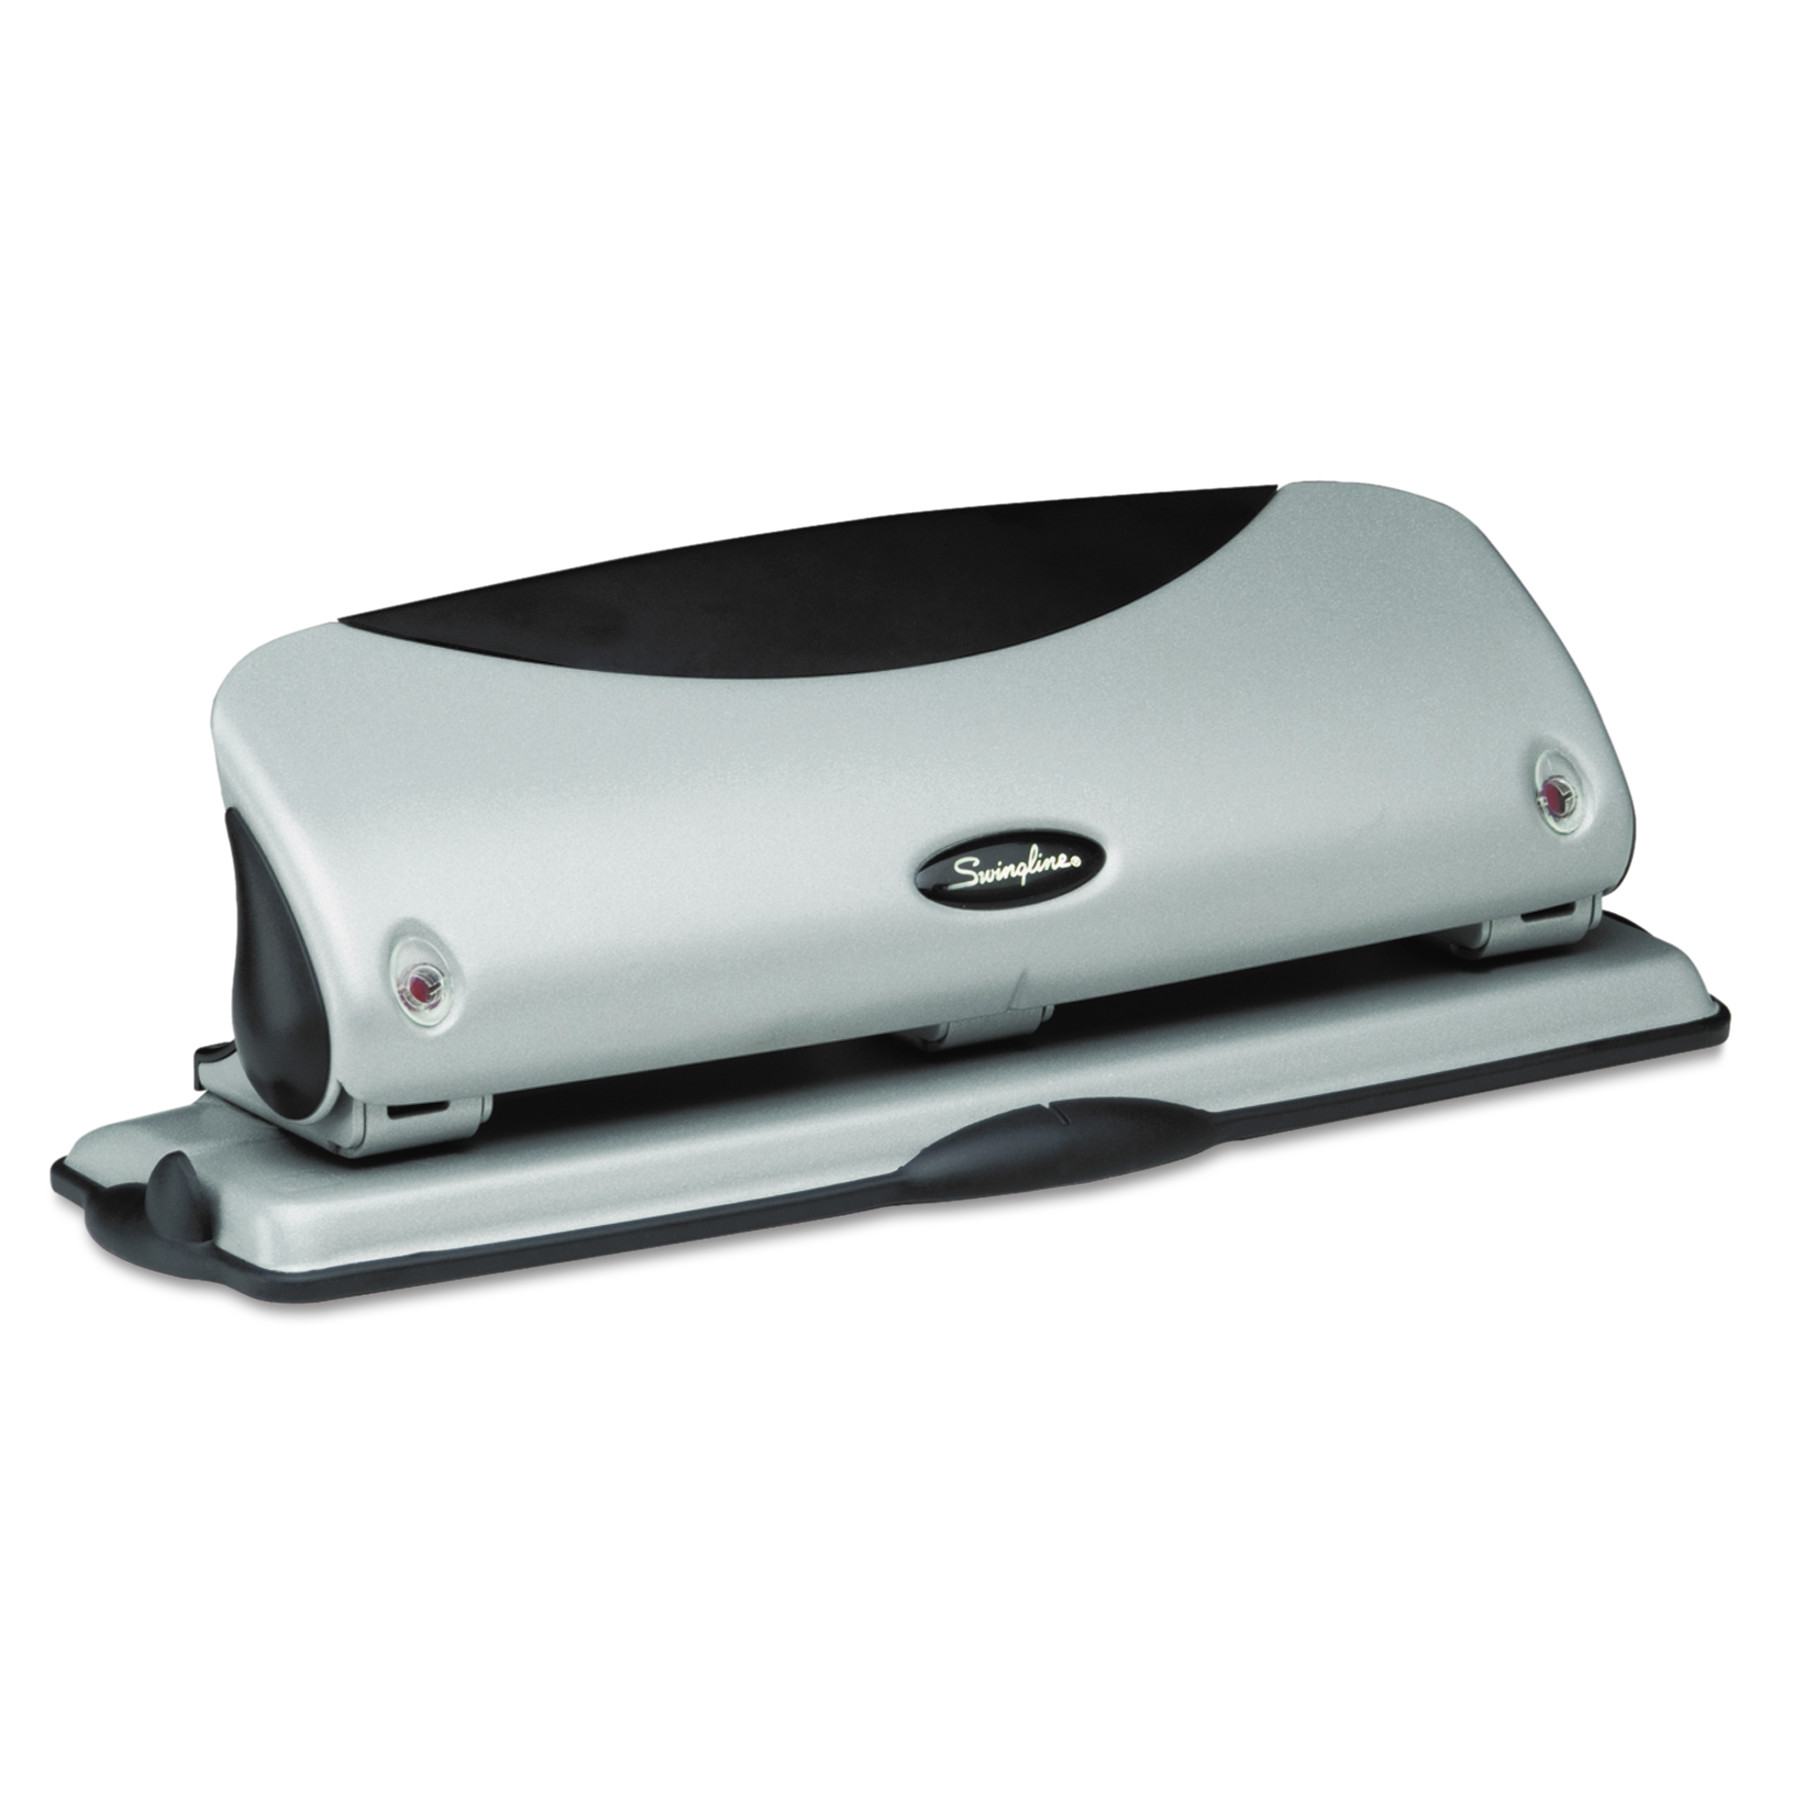 "Swingline 12-Sheet Easy View Desktop Three-Hole Punch, 9/32"" Holes, Black/Silver"